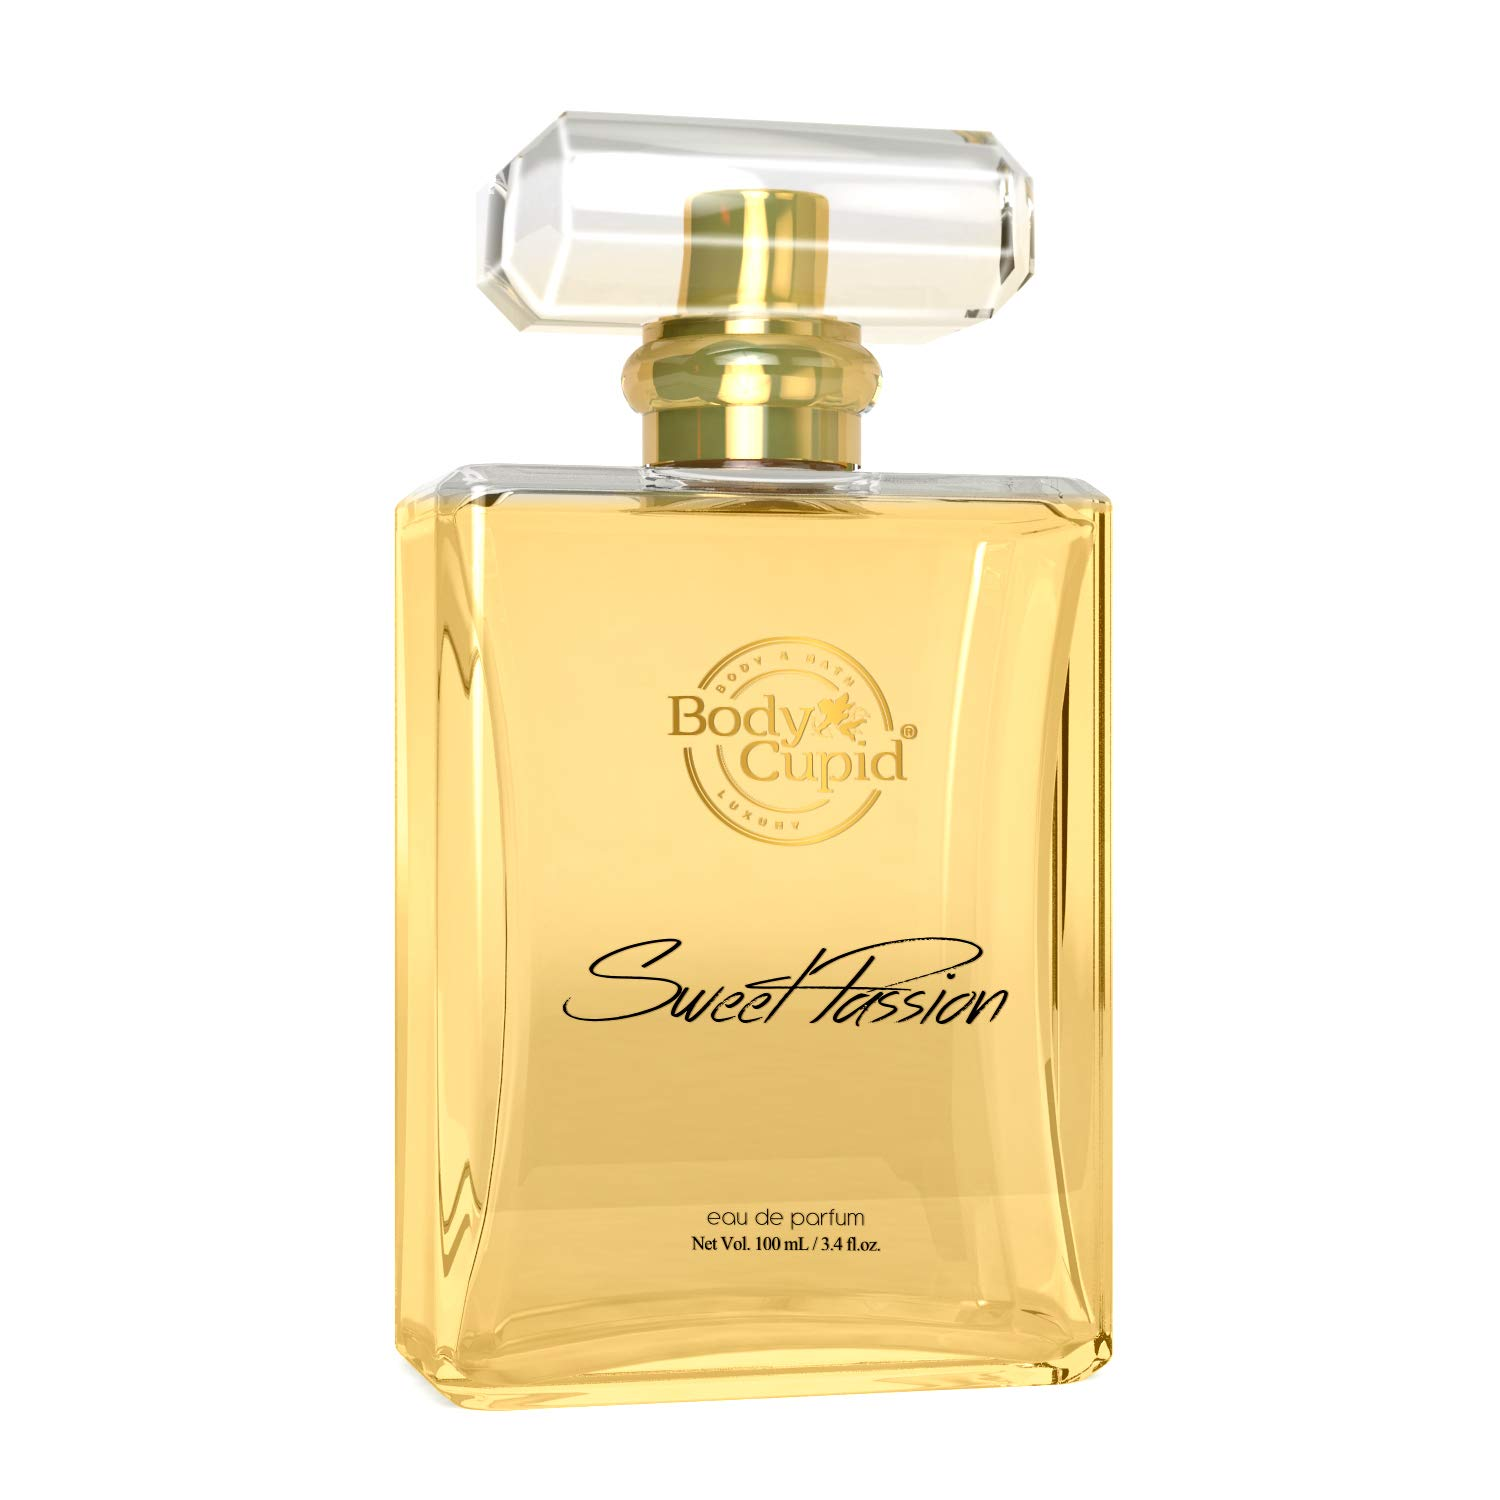 Body Cupid Sweet Passion Perfume for Women - Eau De Parfum - 100 mL